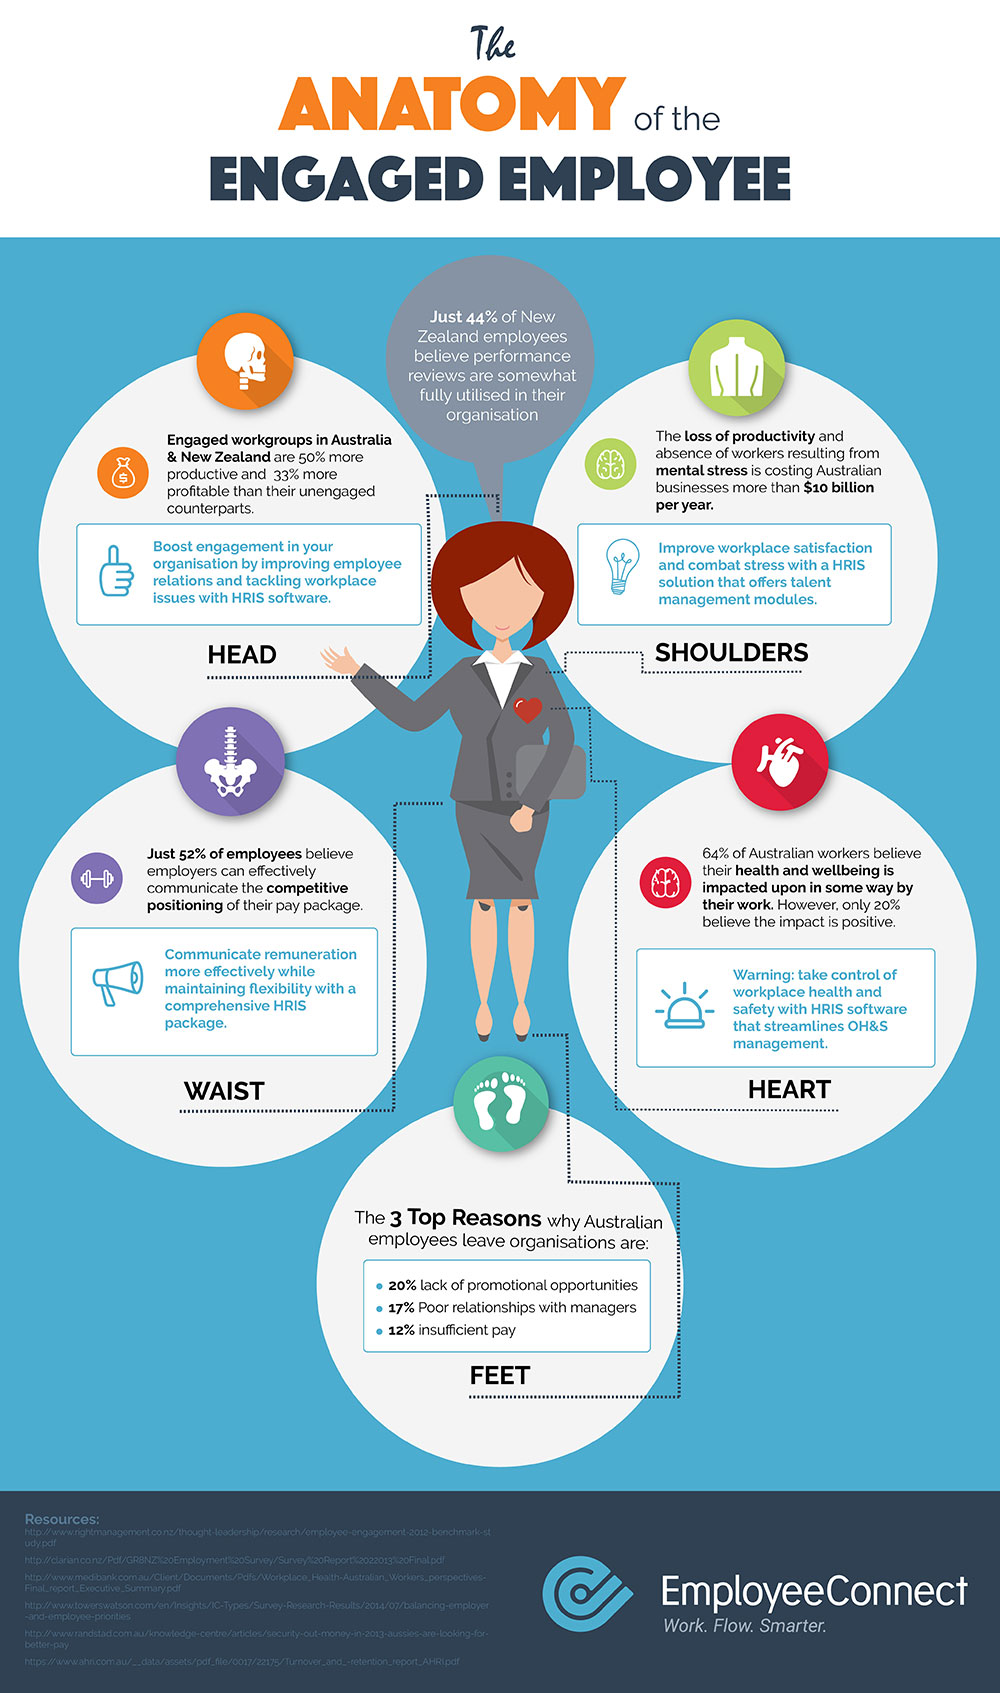 INFOGRAPHIC] The Anatomy of the Engaged Employee - EmployeeConnect